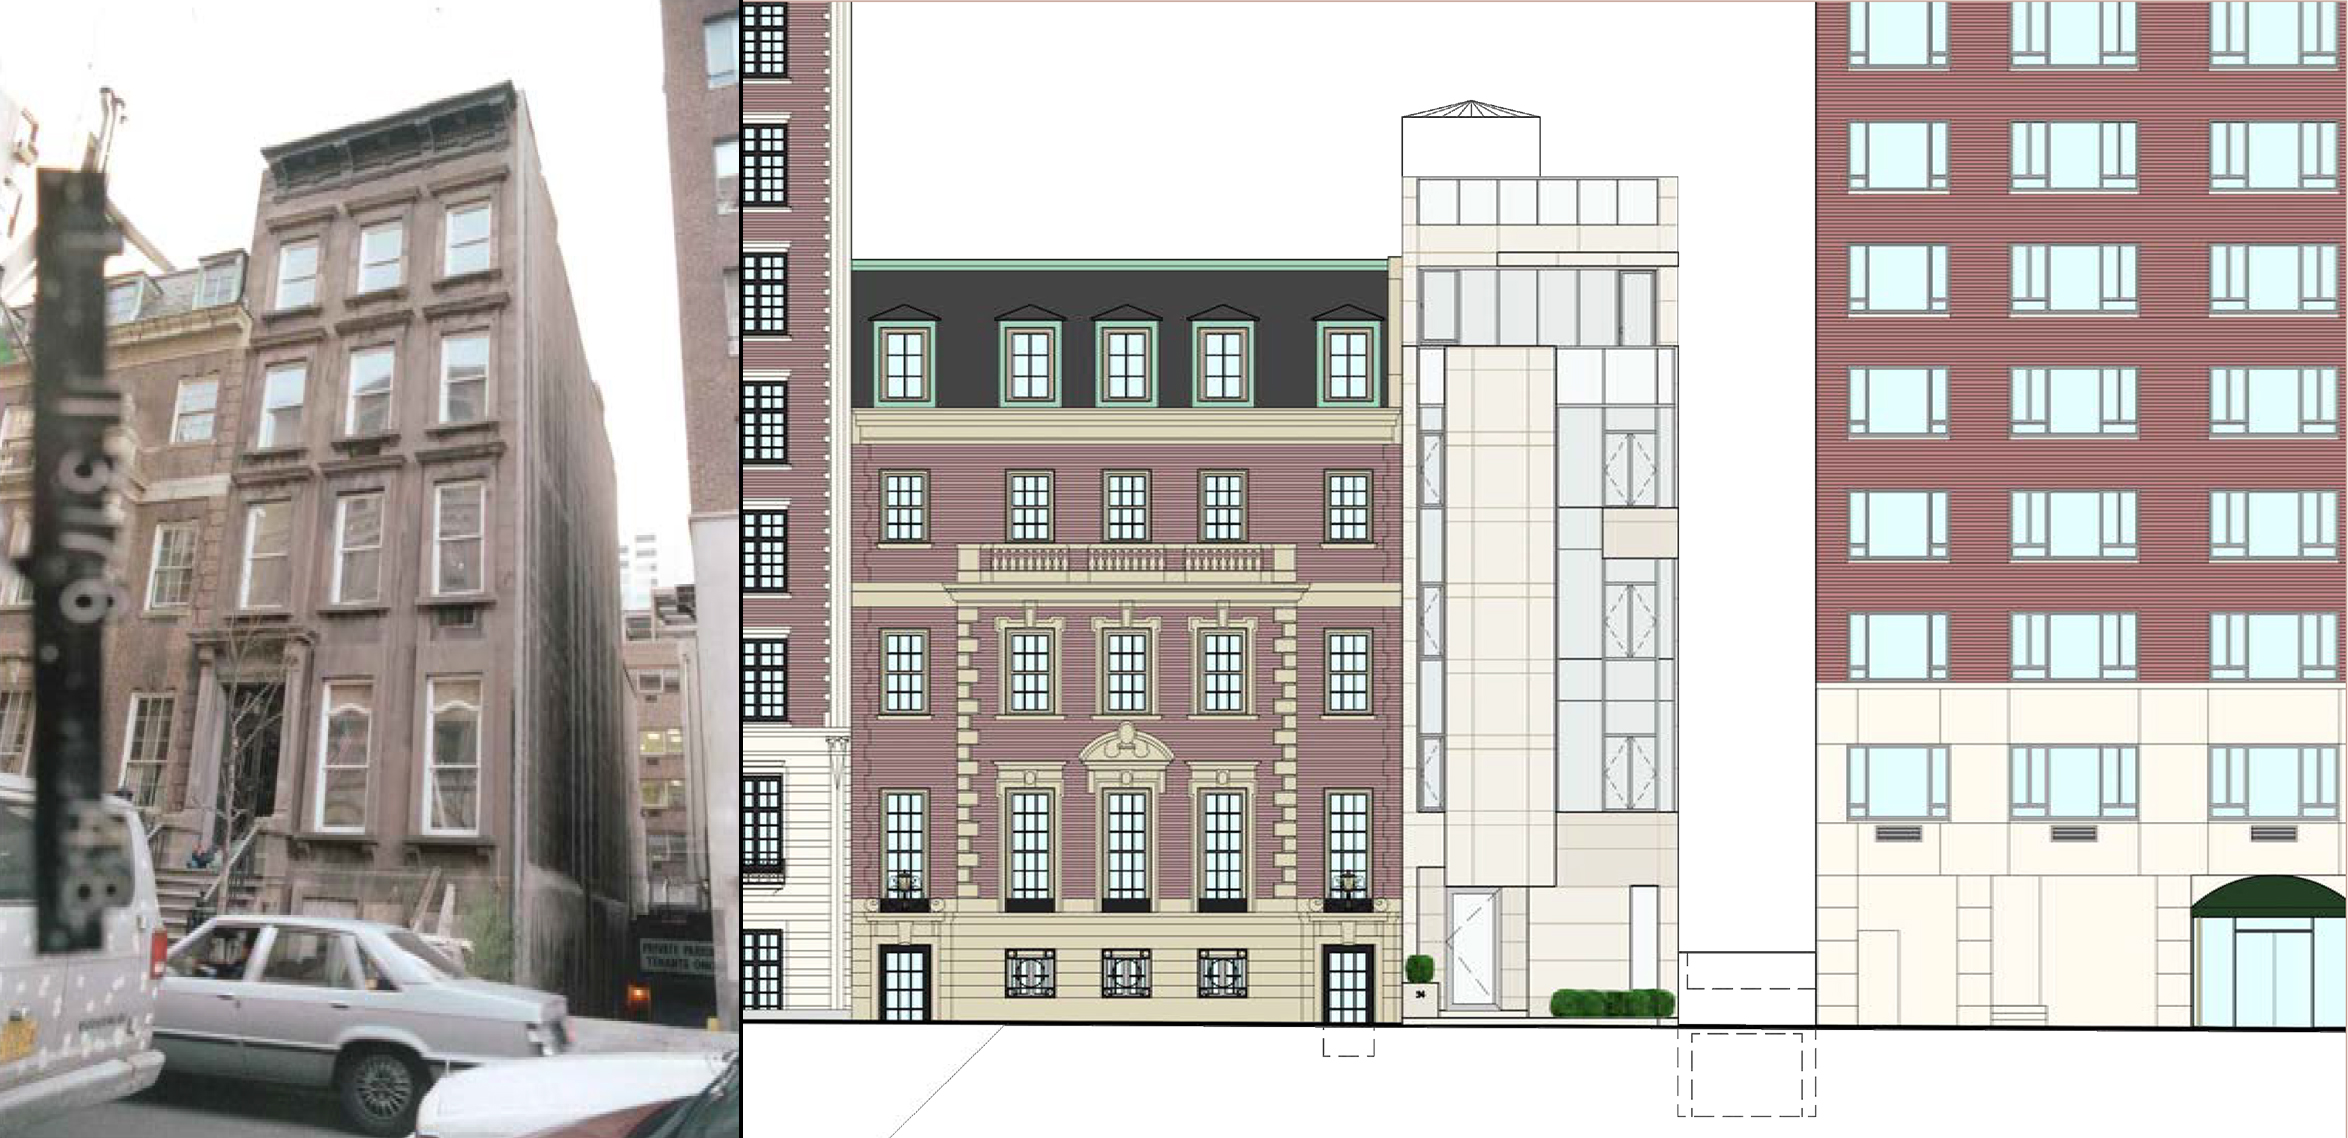 The now-destroyed occupant of 34 East 62nd Street and the 2007 proposal for the site